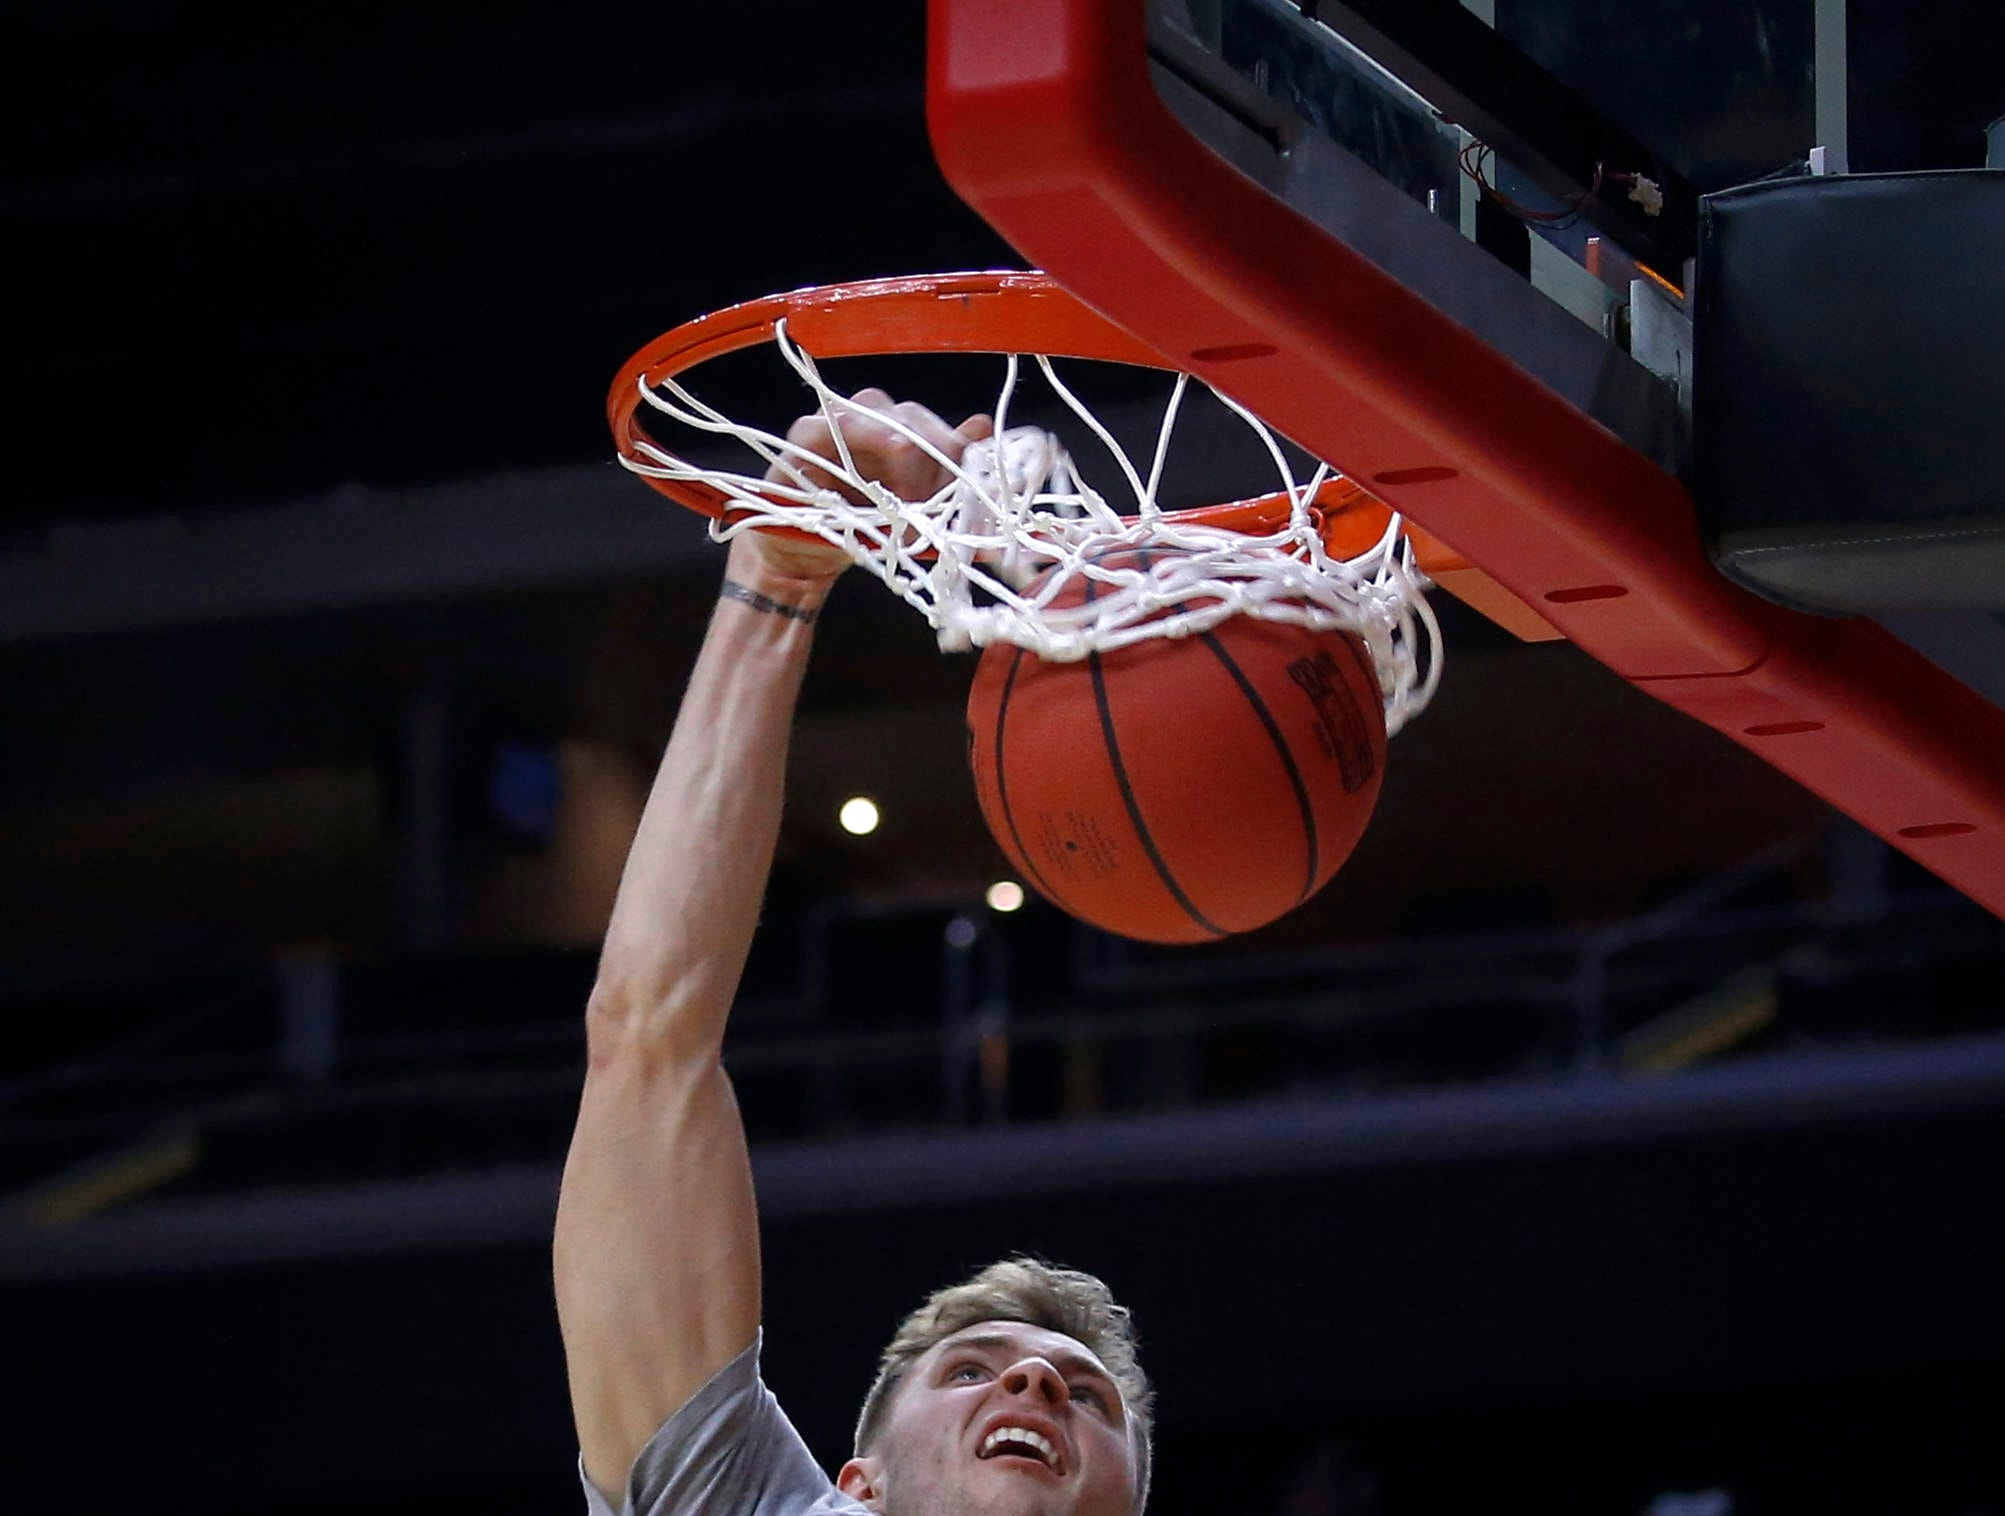 Montana freshman Mack Anderson dunks the ball during open practice on Wednesday, March 20, 2019, at Wells Fargo Arena in Des Moines, Iowa.